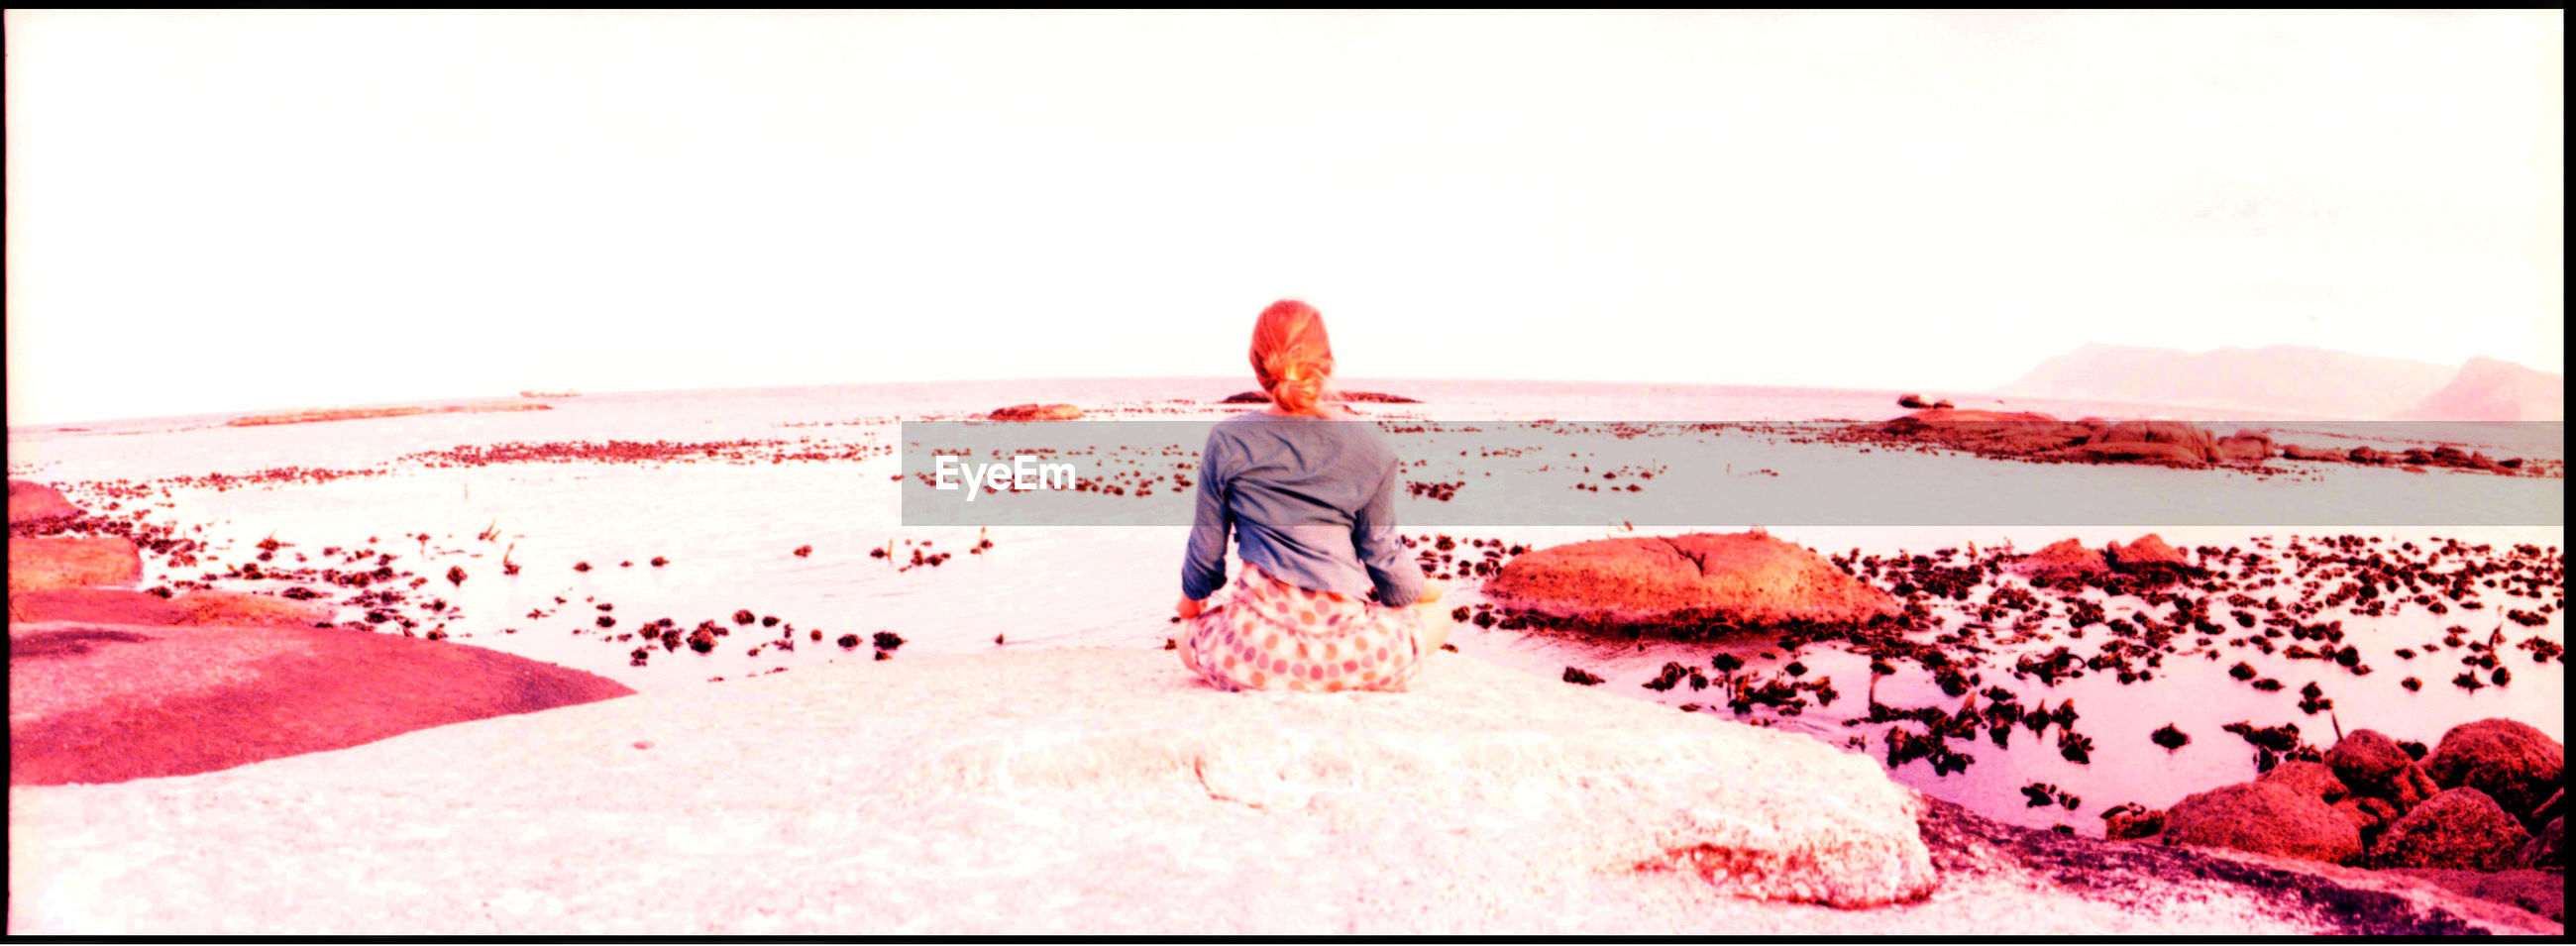 Rear view of woman sitting on rocks in front of river against clear sky